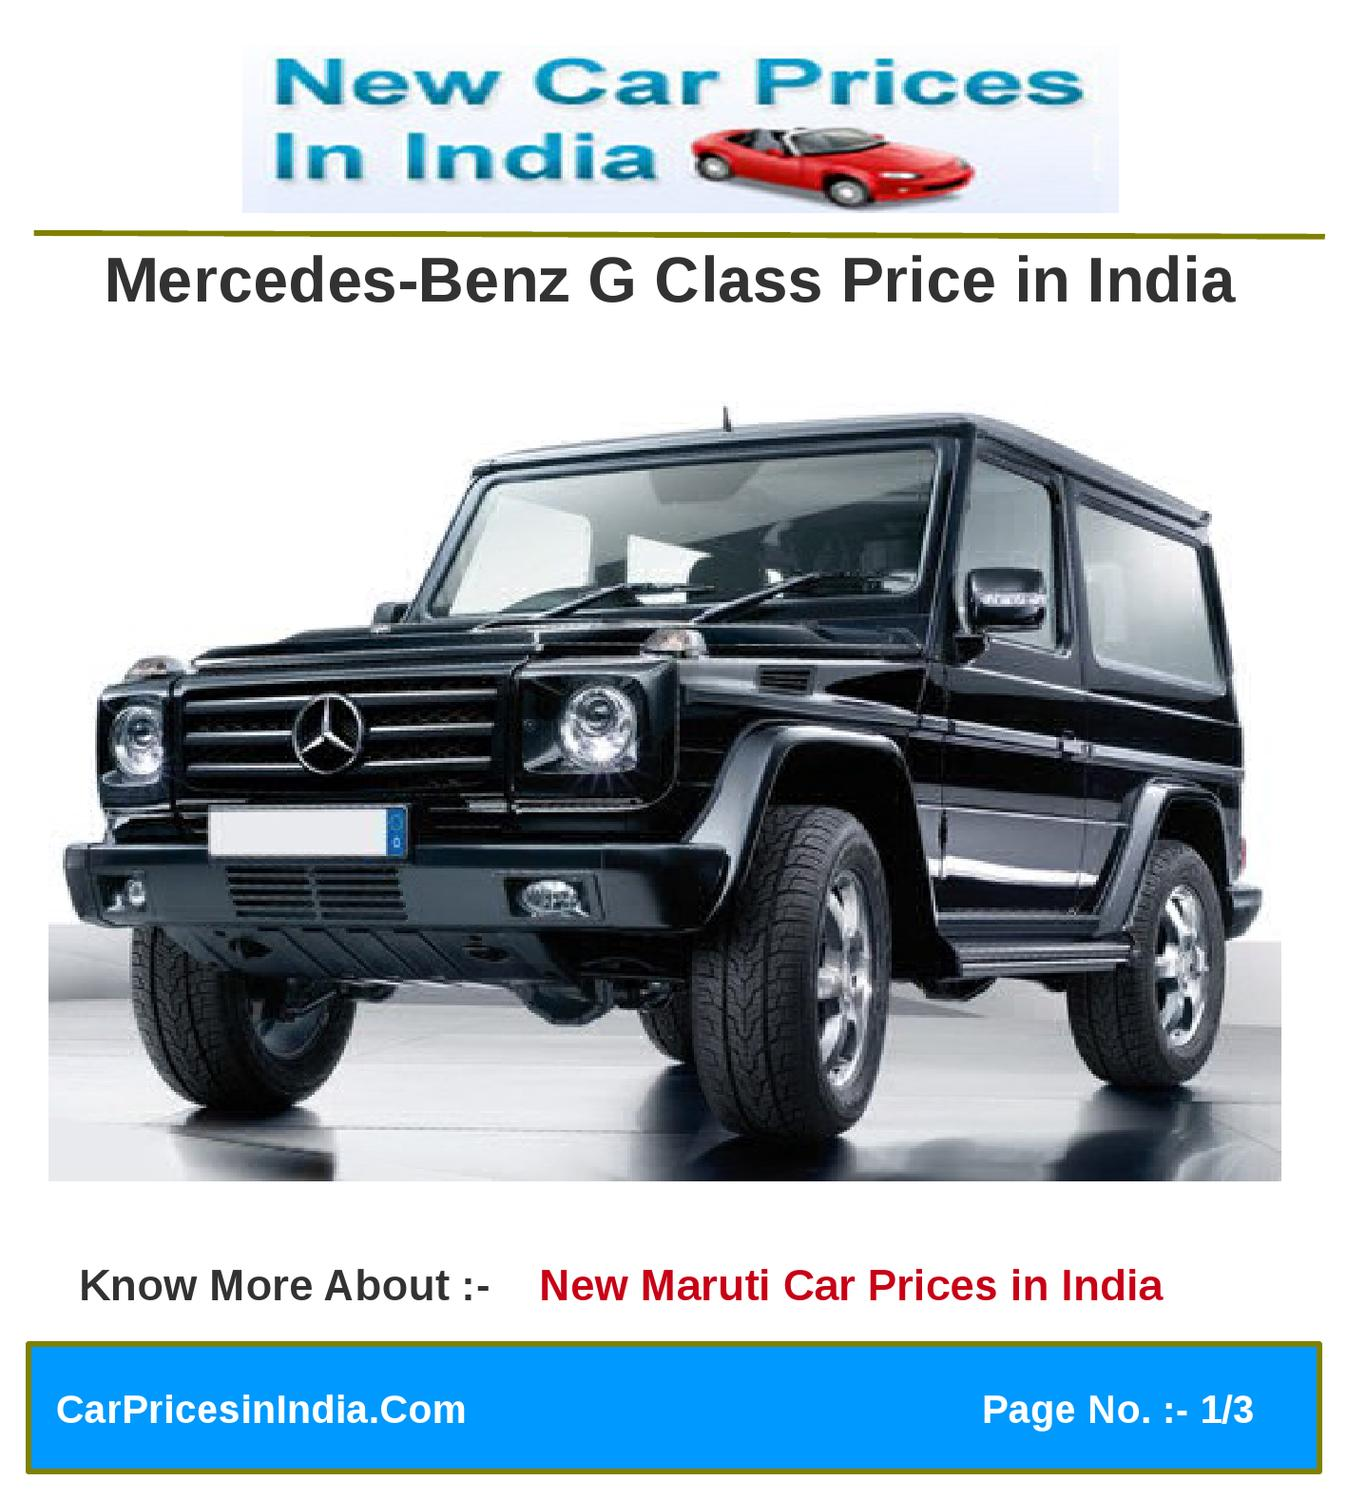 Mercedes Benz G Class Price In India By Microsite Team   Issuu